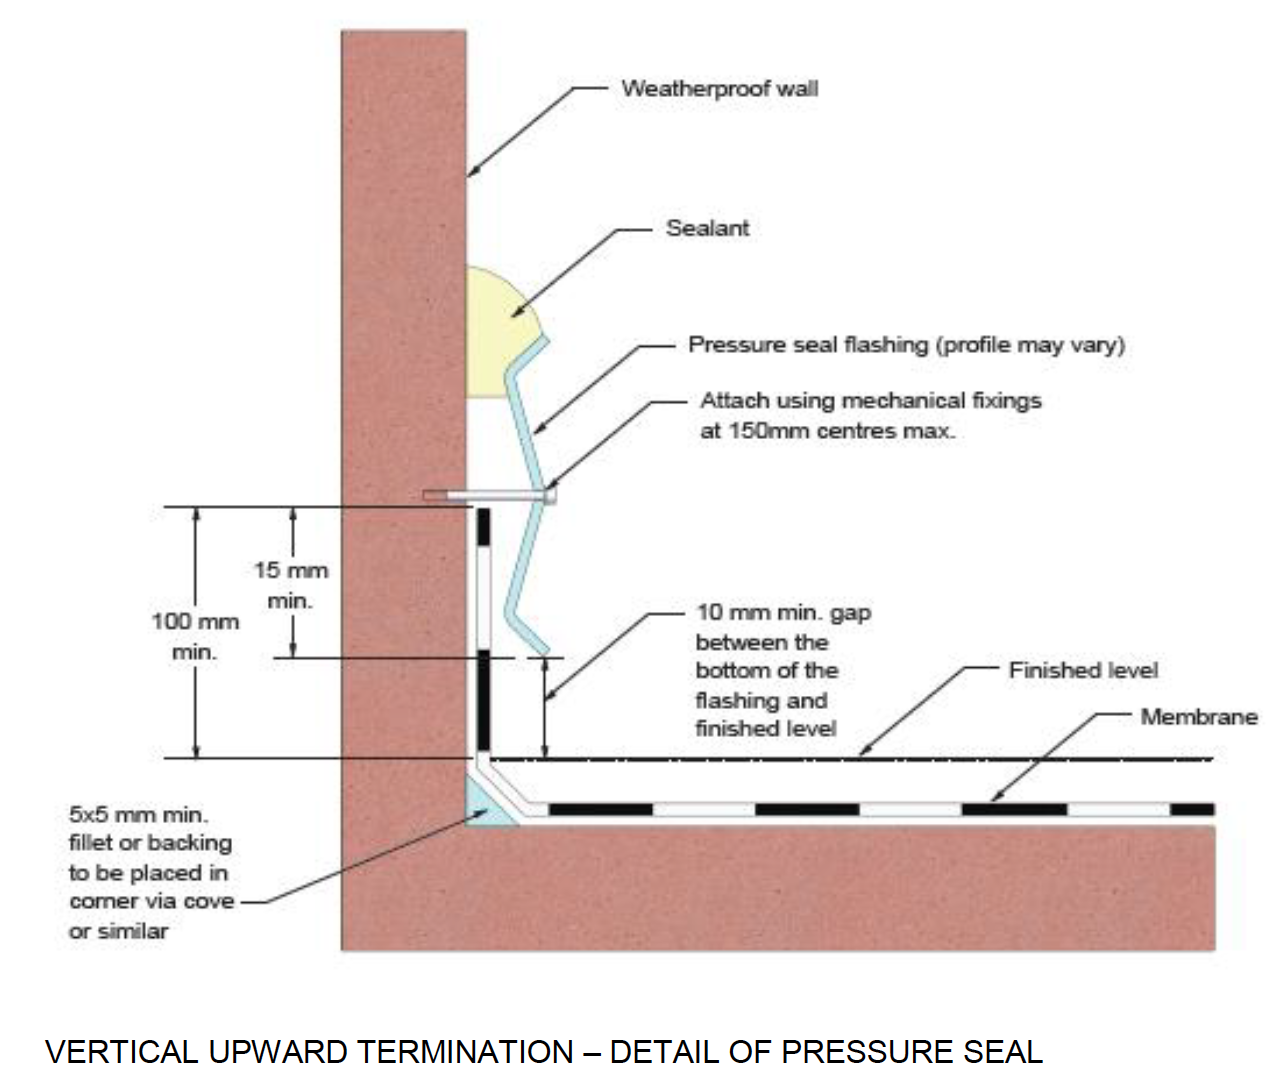 What are the Australian Standard requirements for waterproofing vertical termination details?